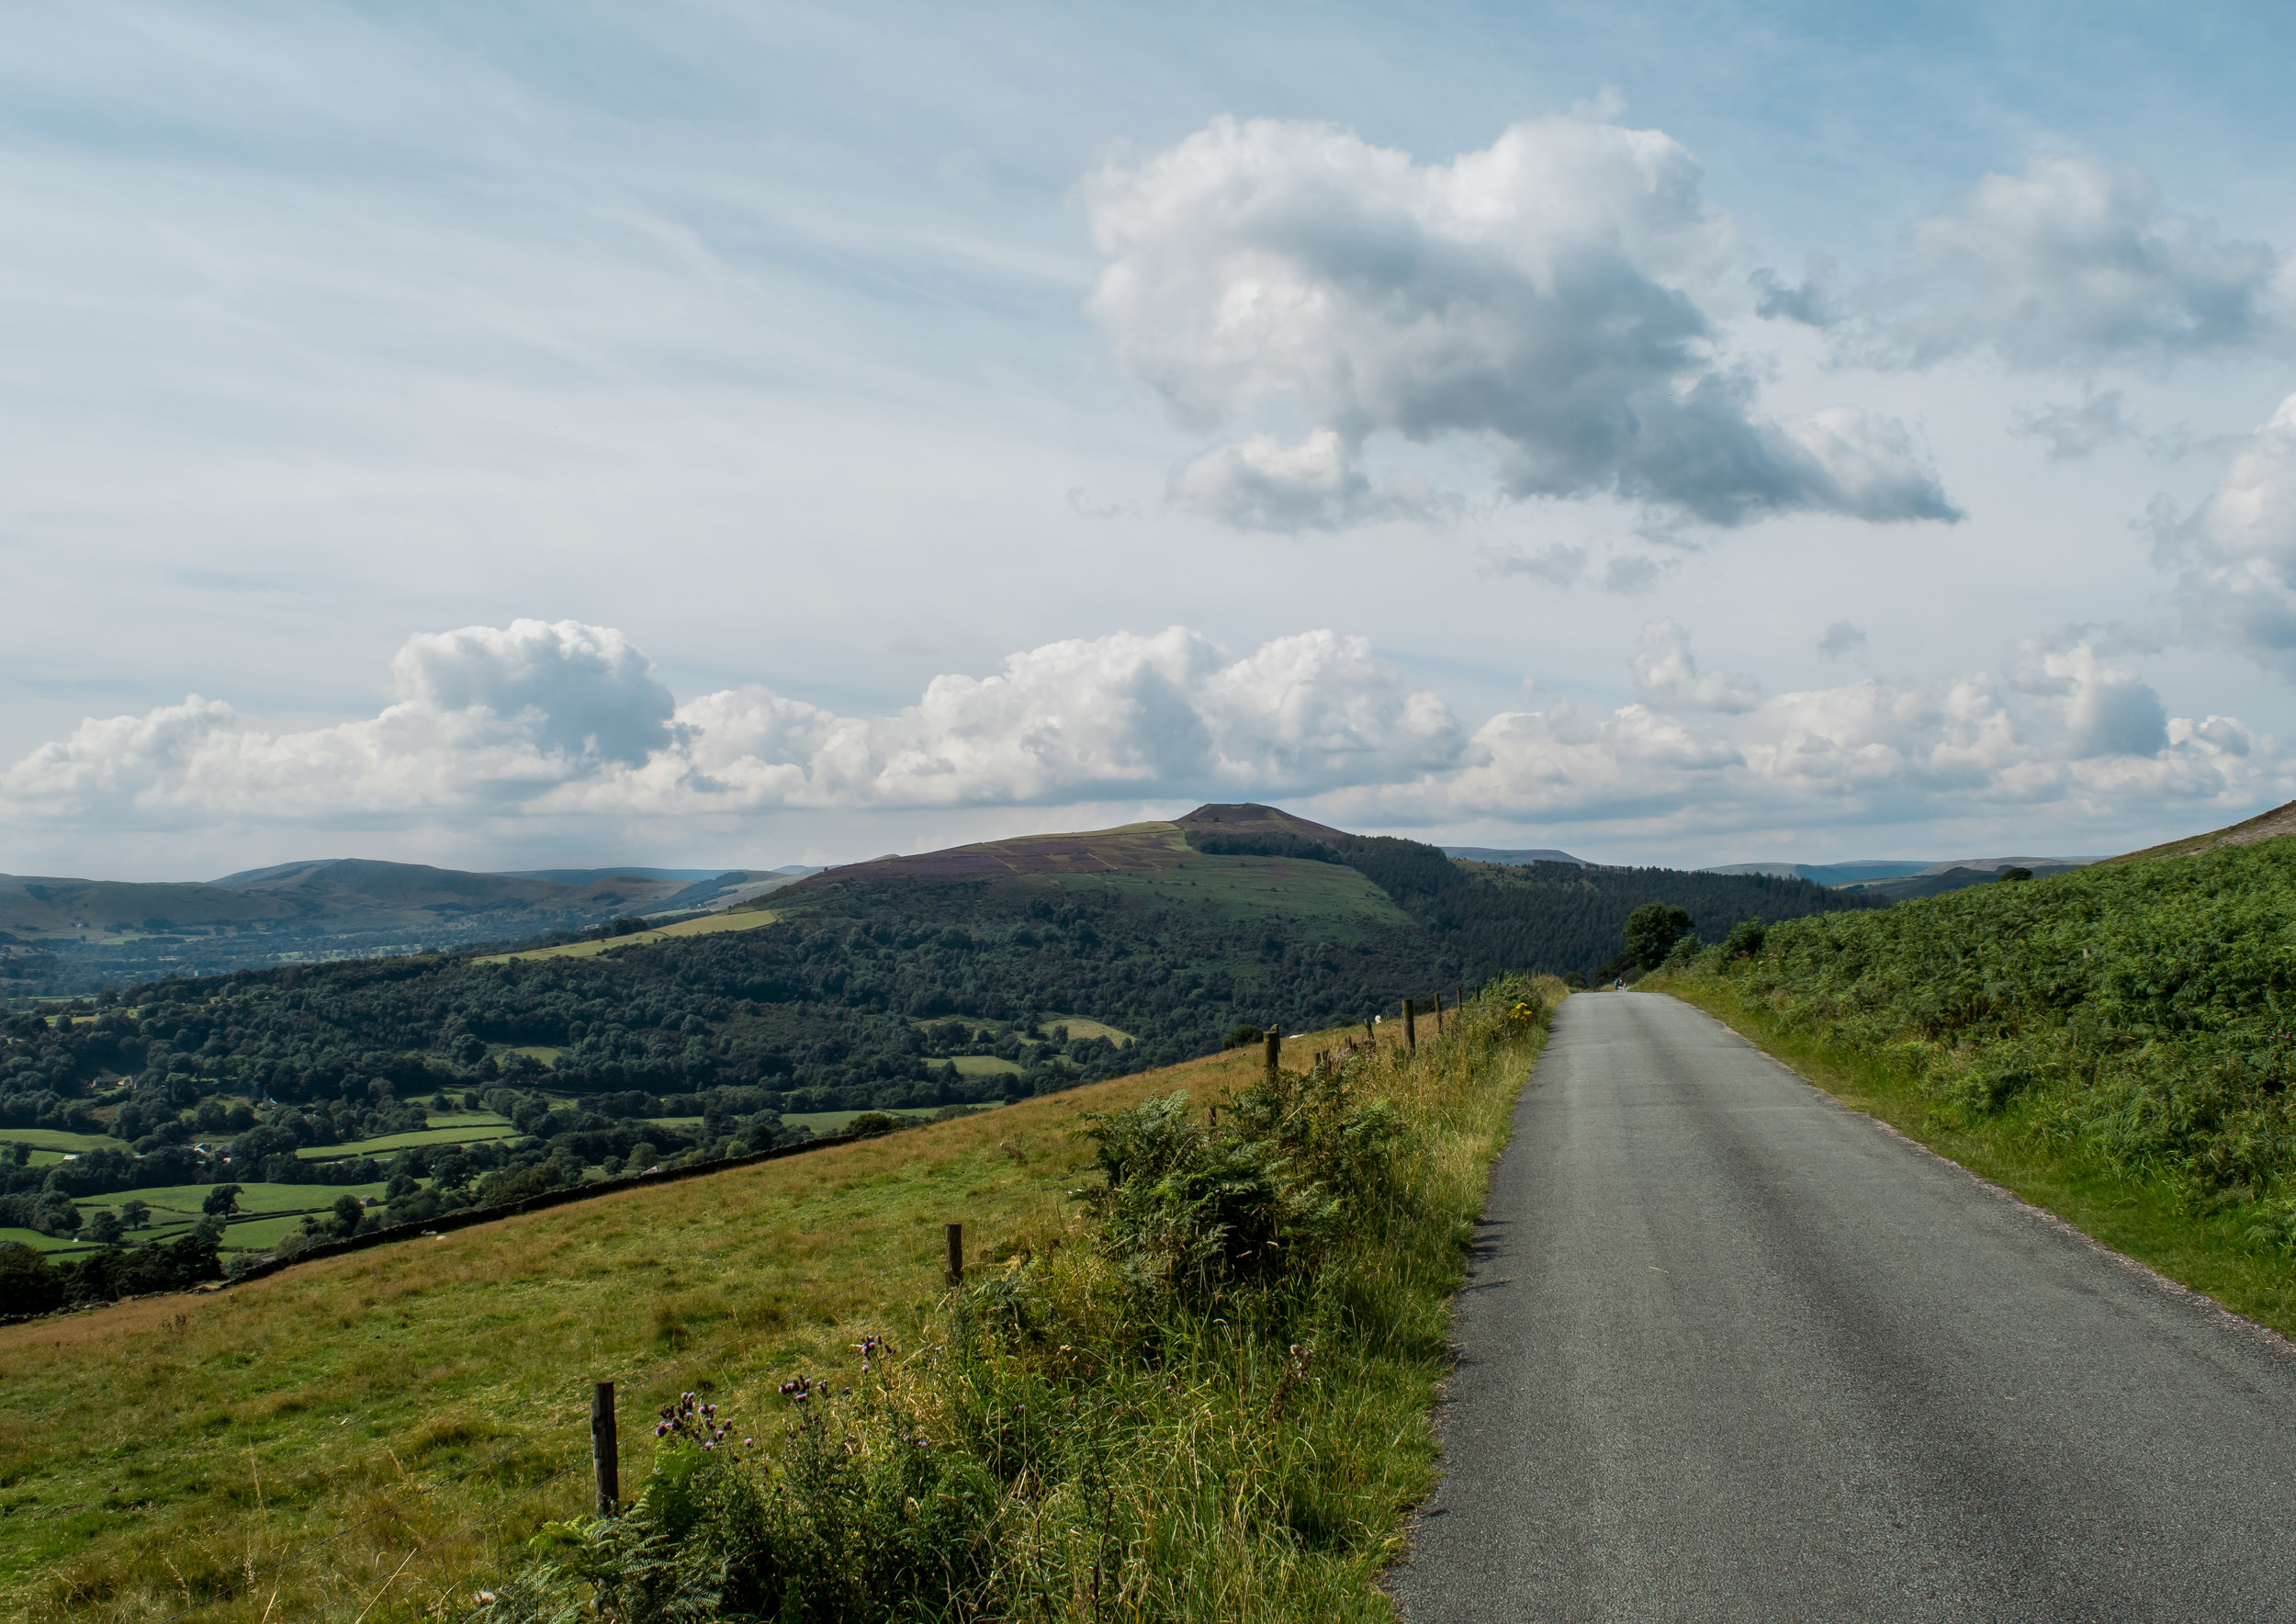 LOOKING OUT TOWARDS WIN HILL